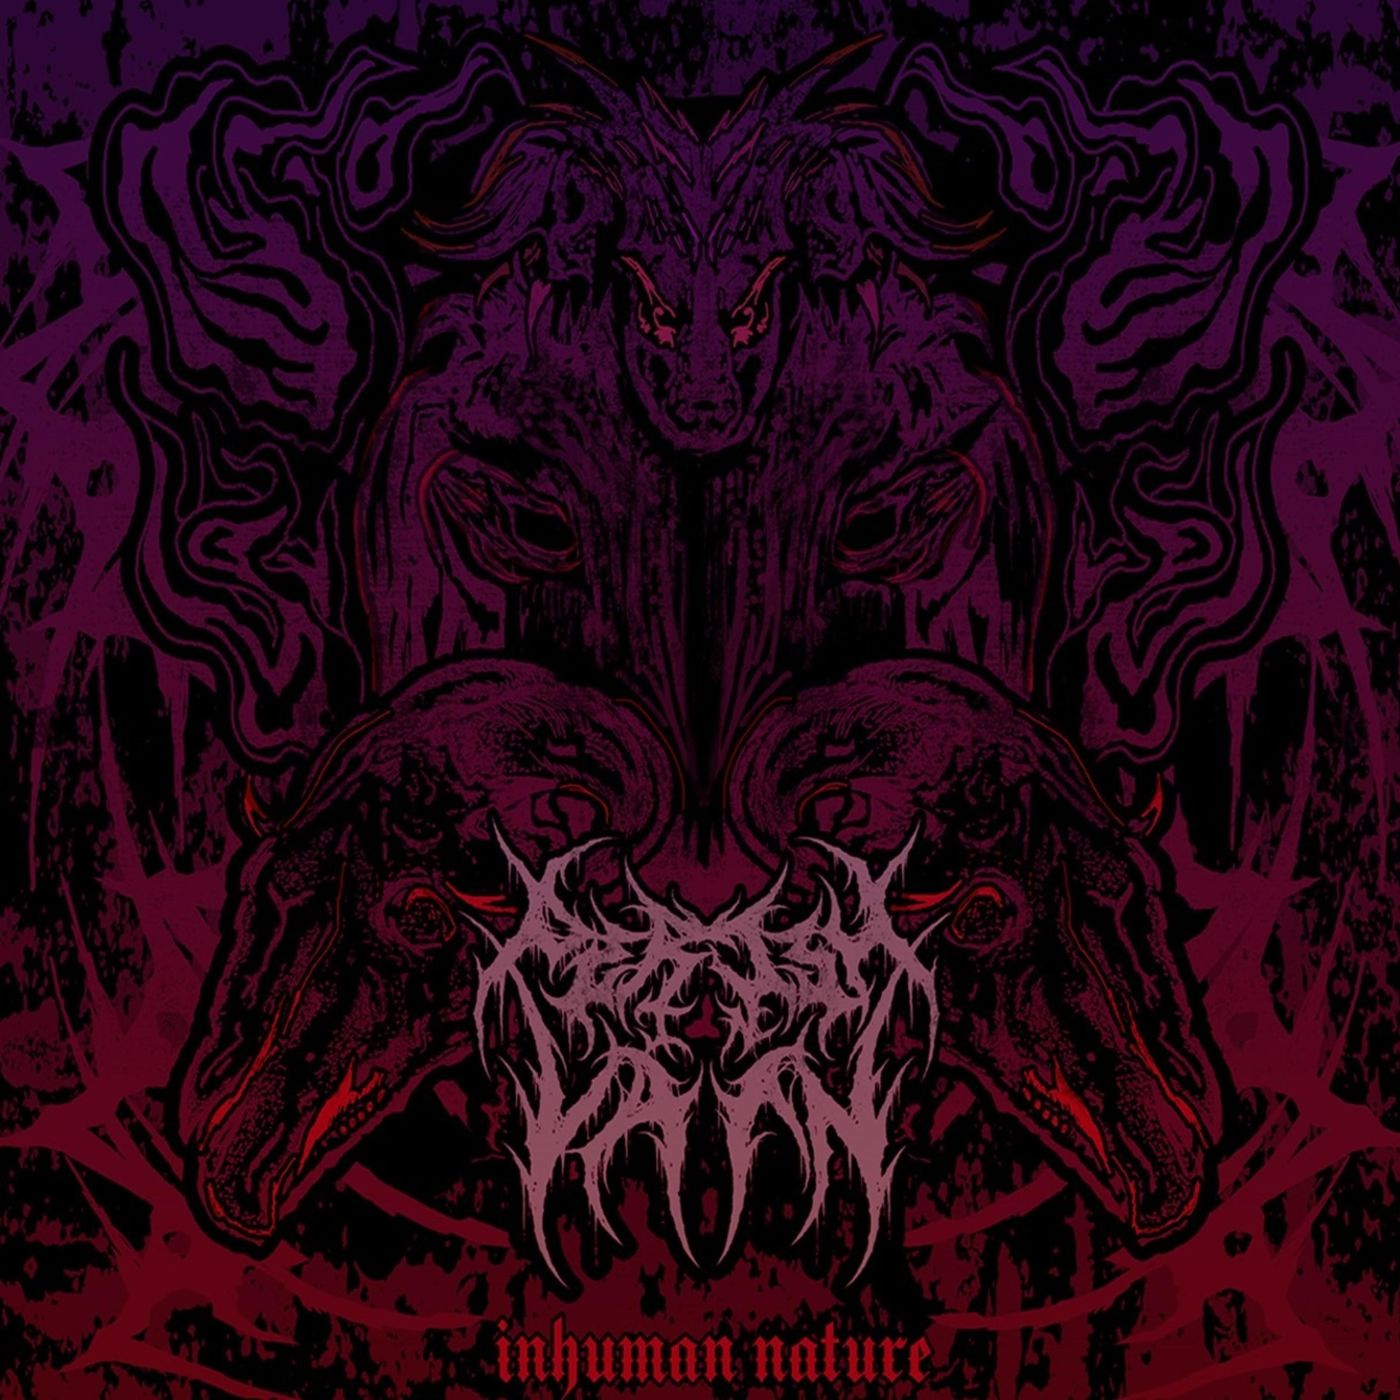 Perish in Vain - Inhuman Nature [EP] (2019)